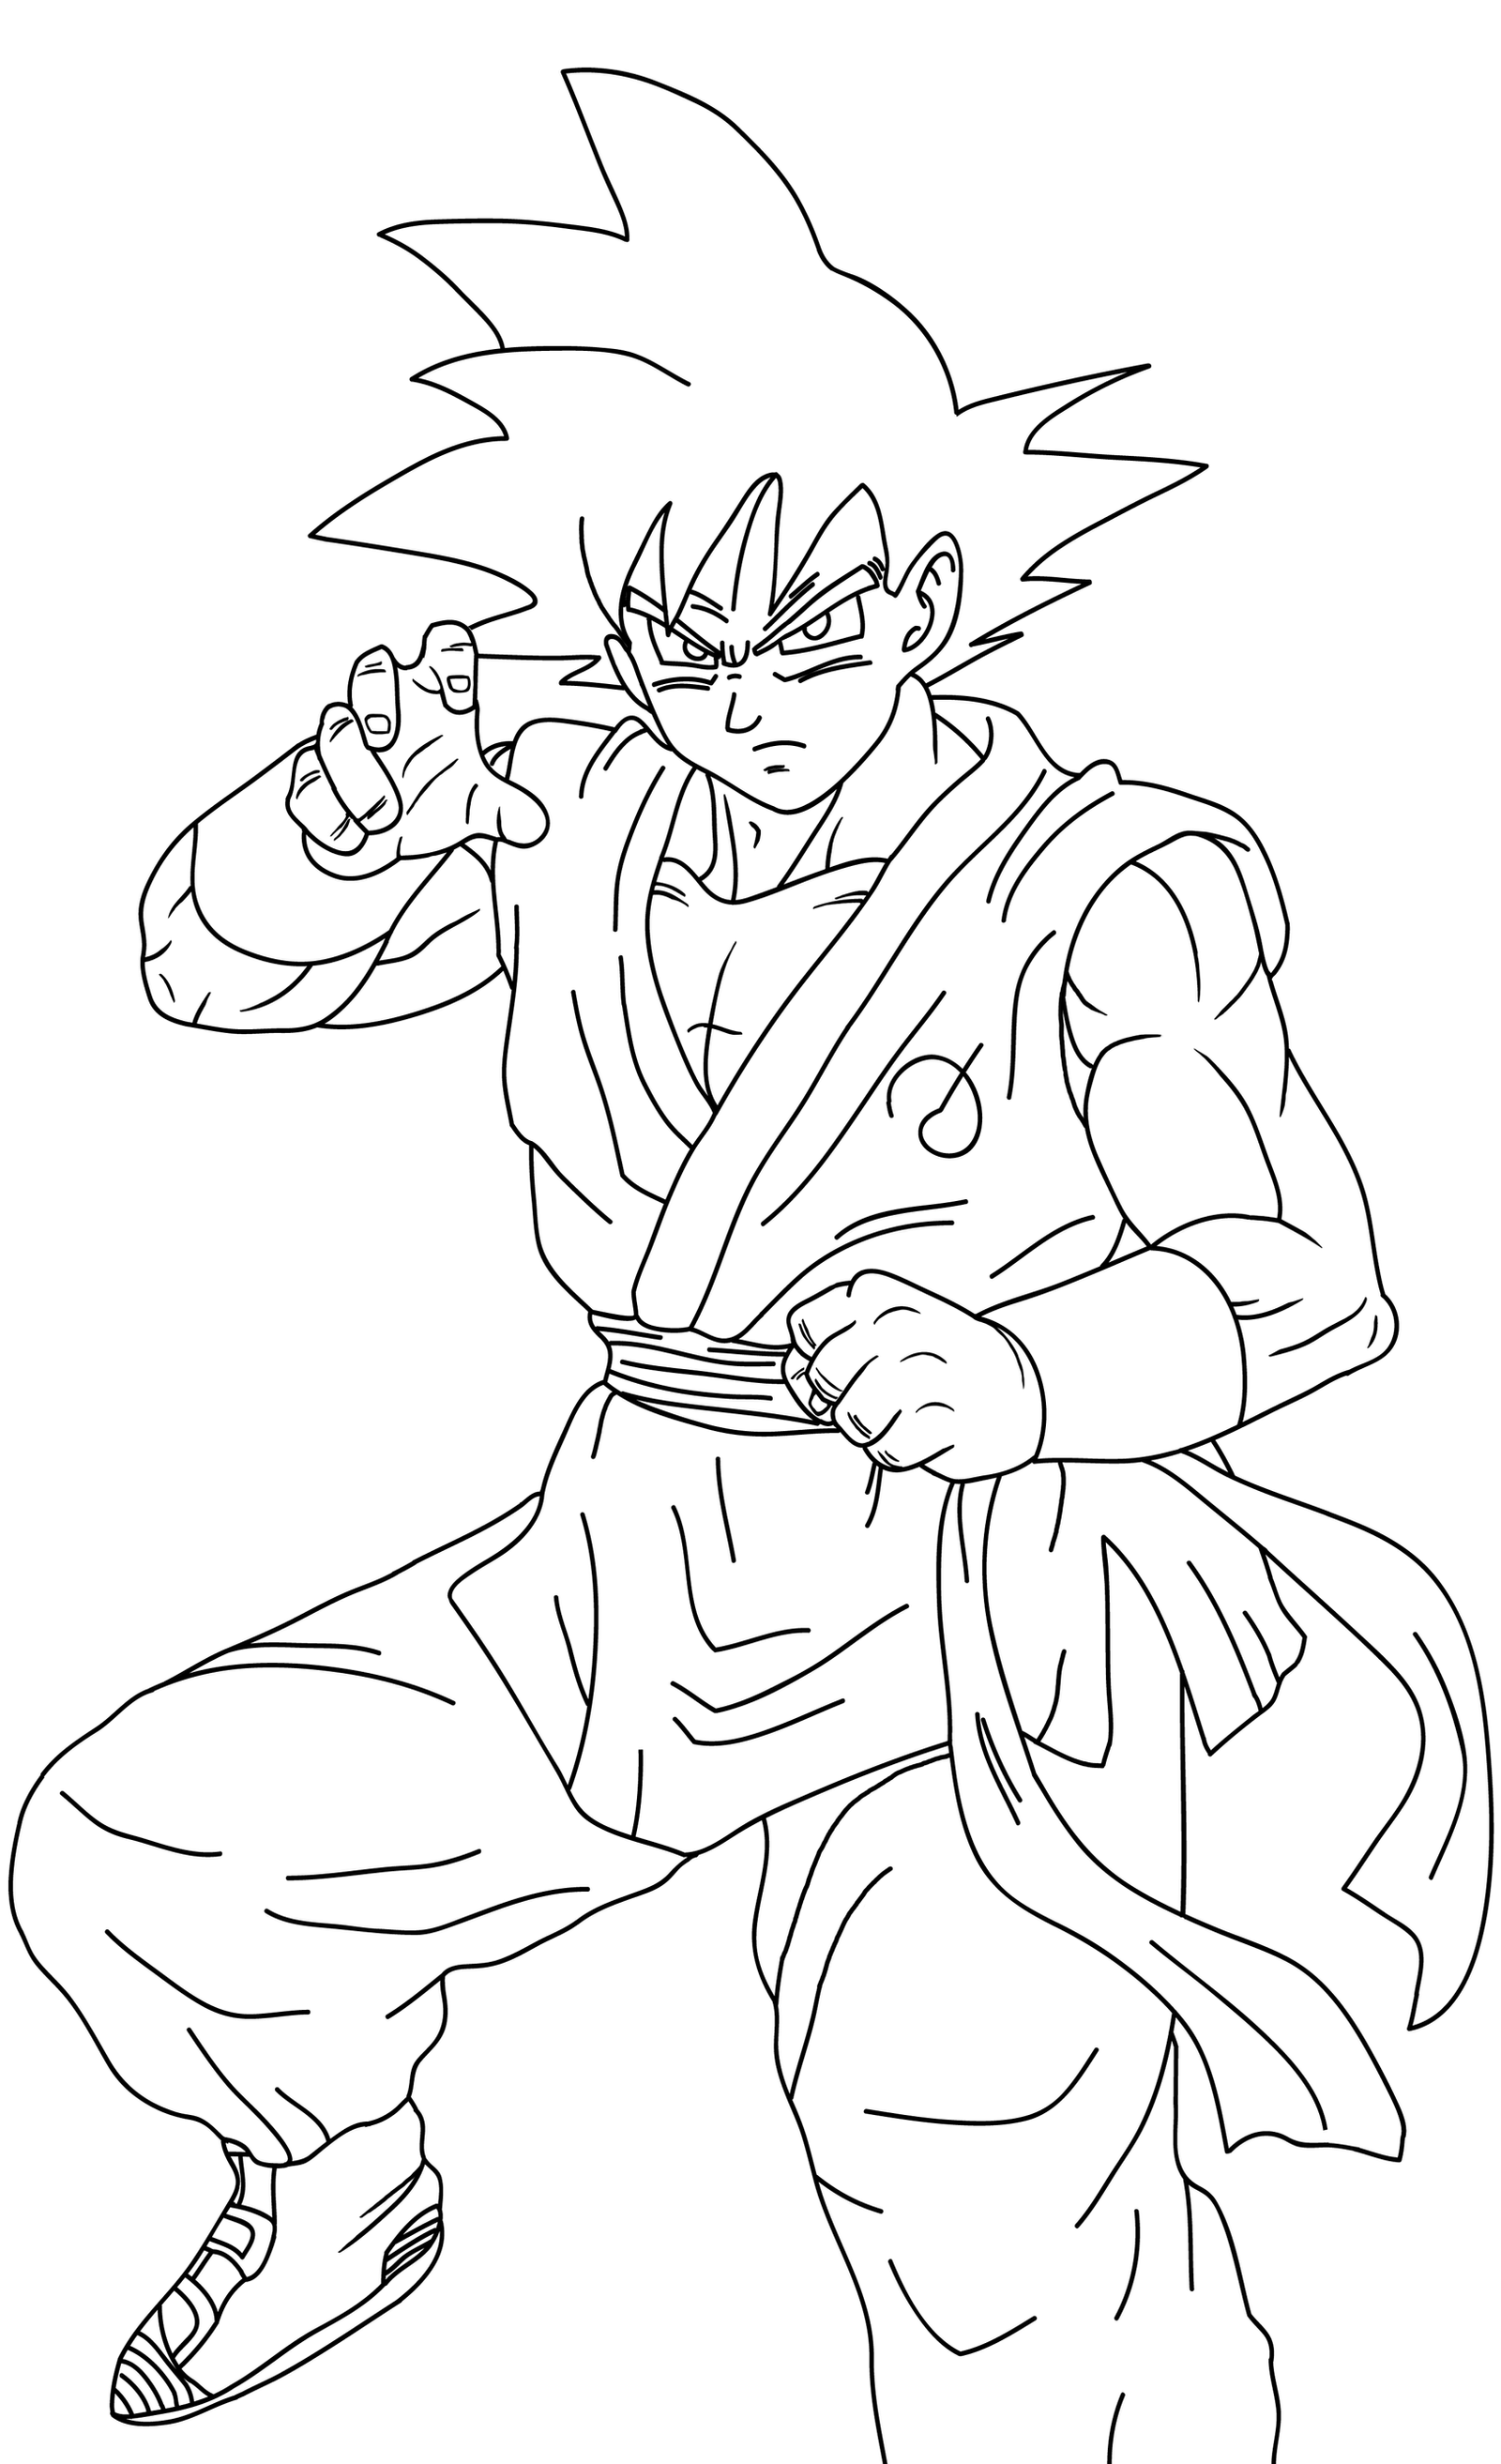 Goku Vs Naruto Coloring Pages